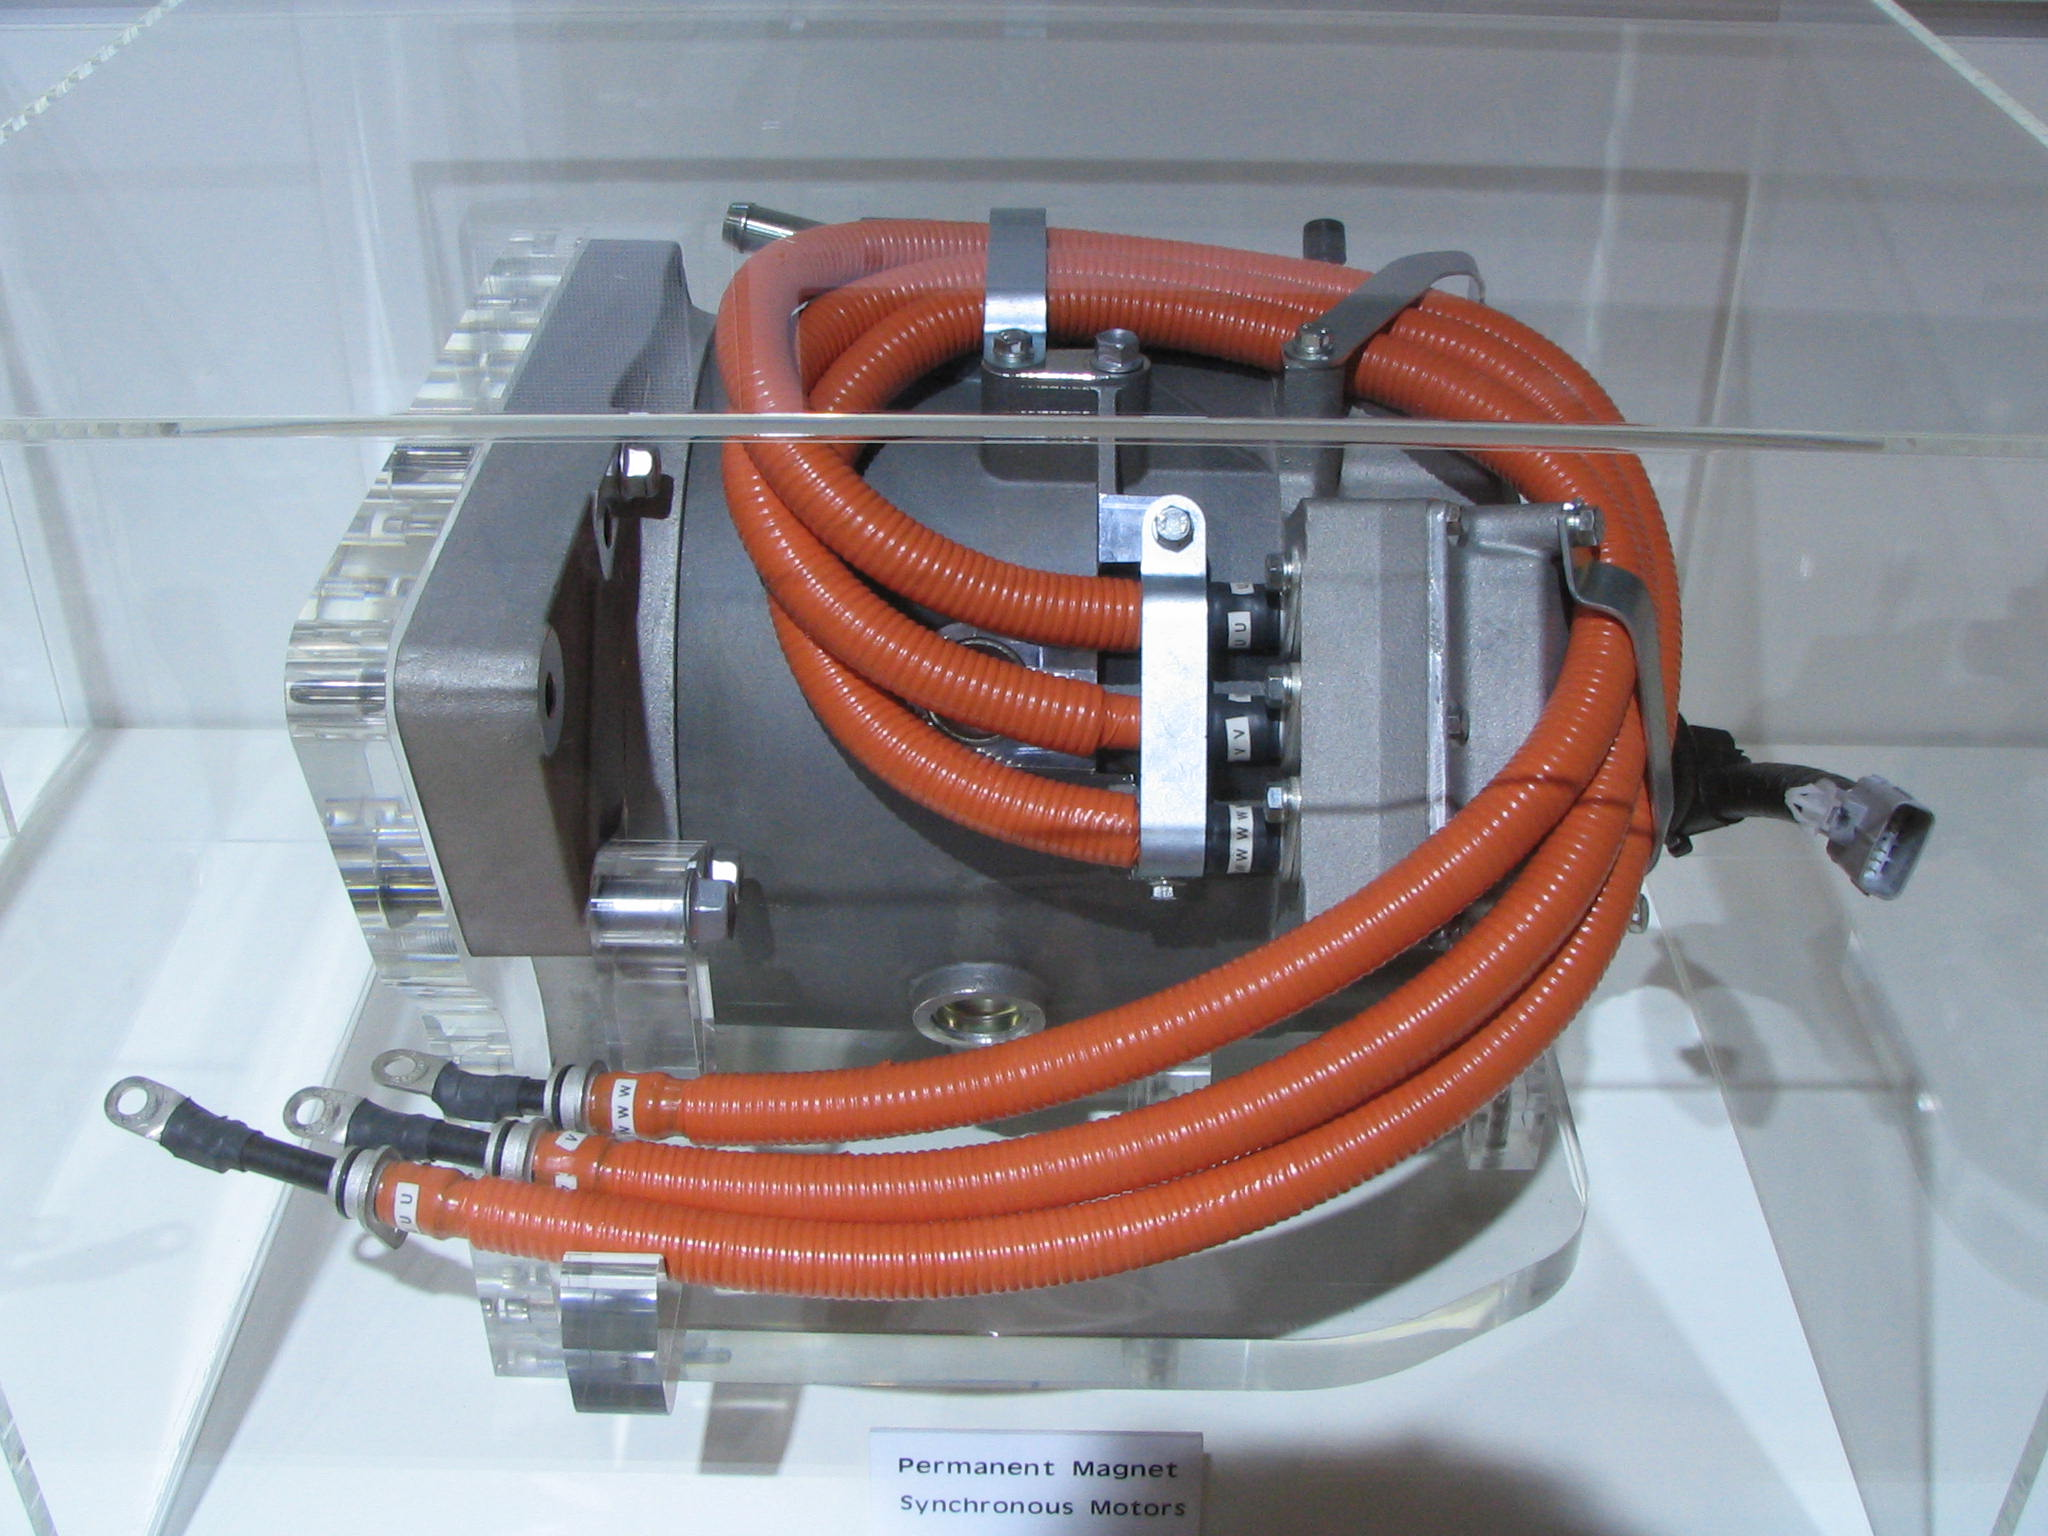 Permanent magnet synchronous motor for What is a permanent magnet motor